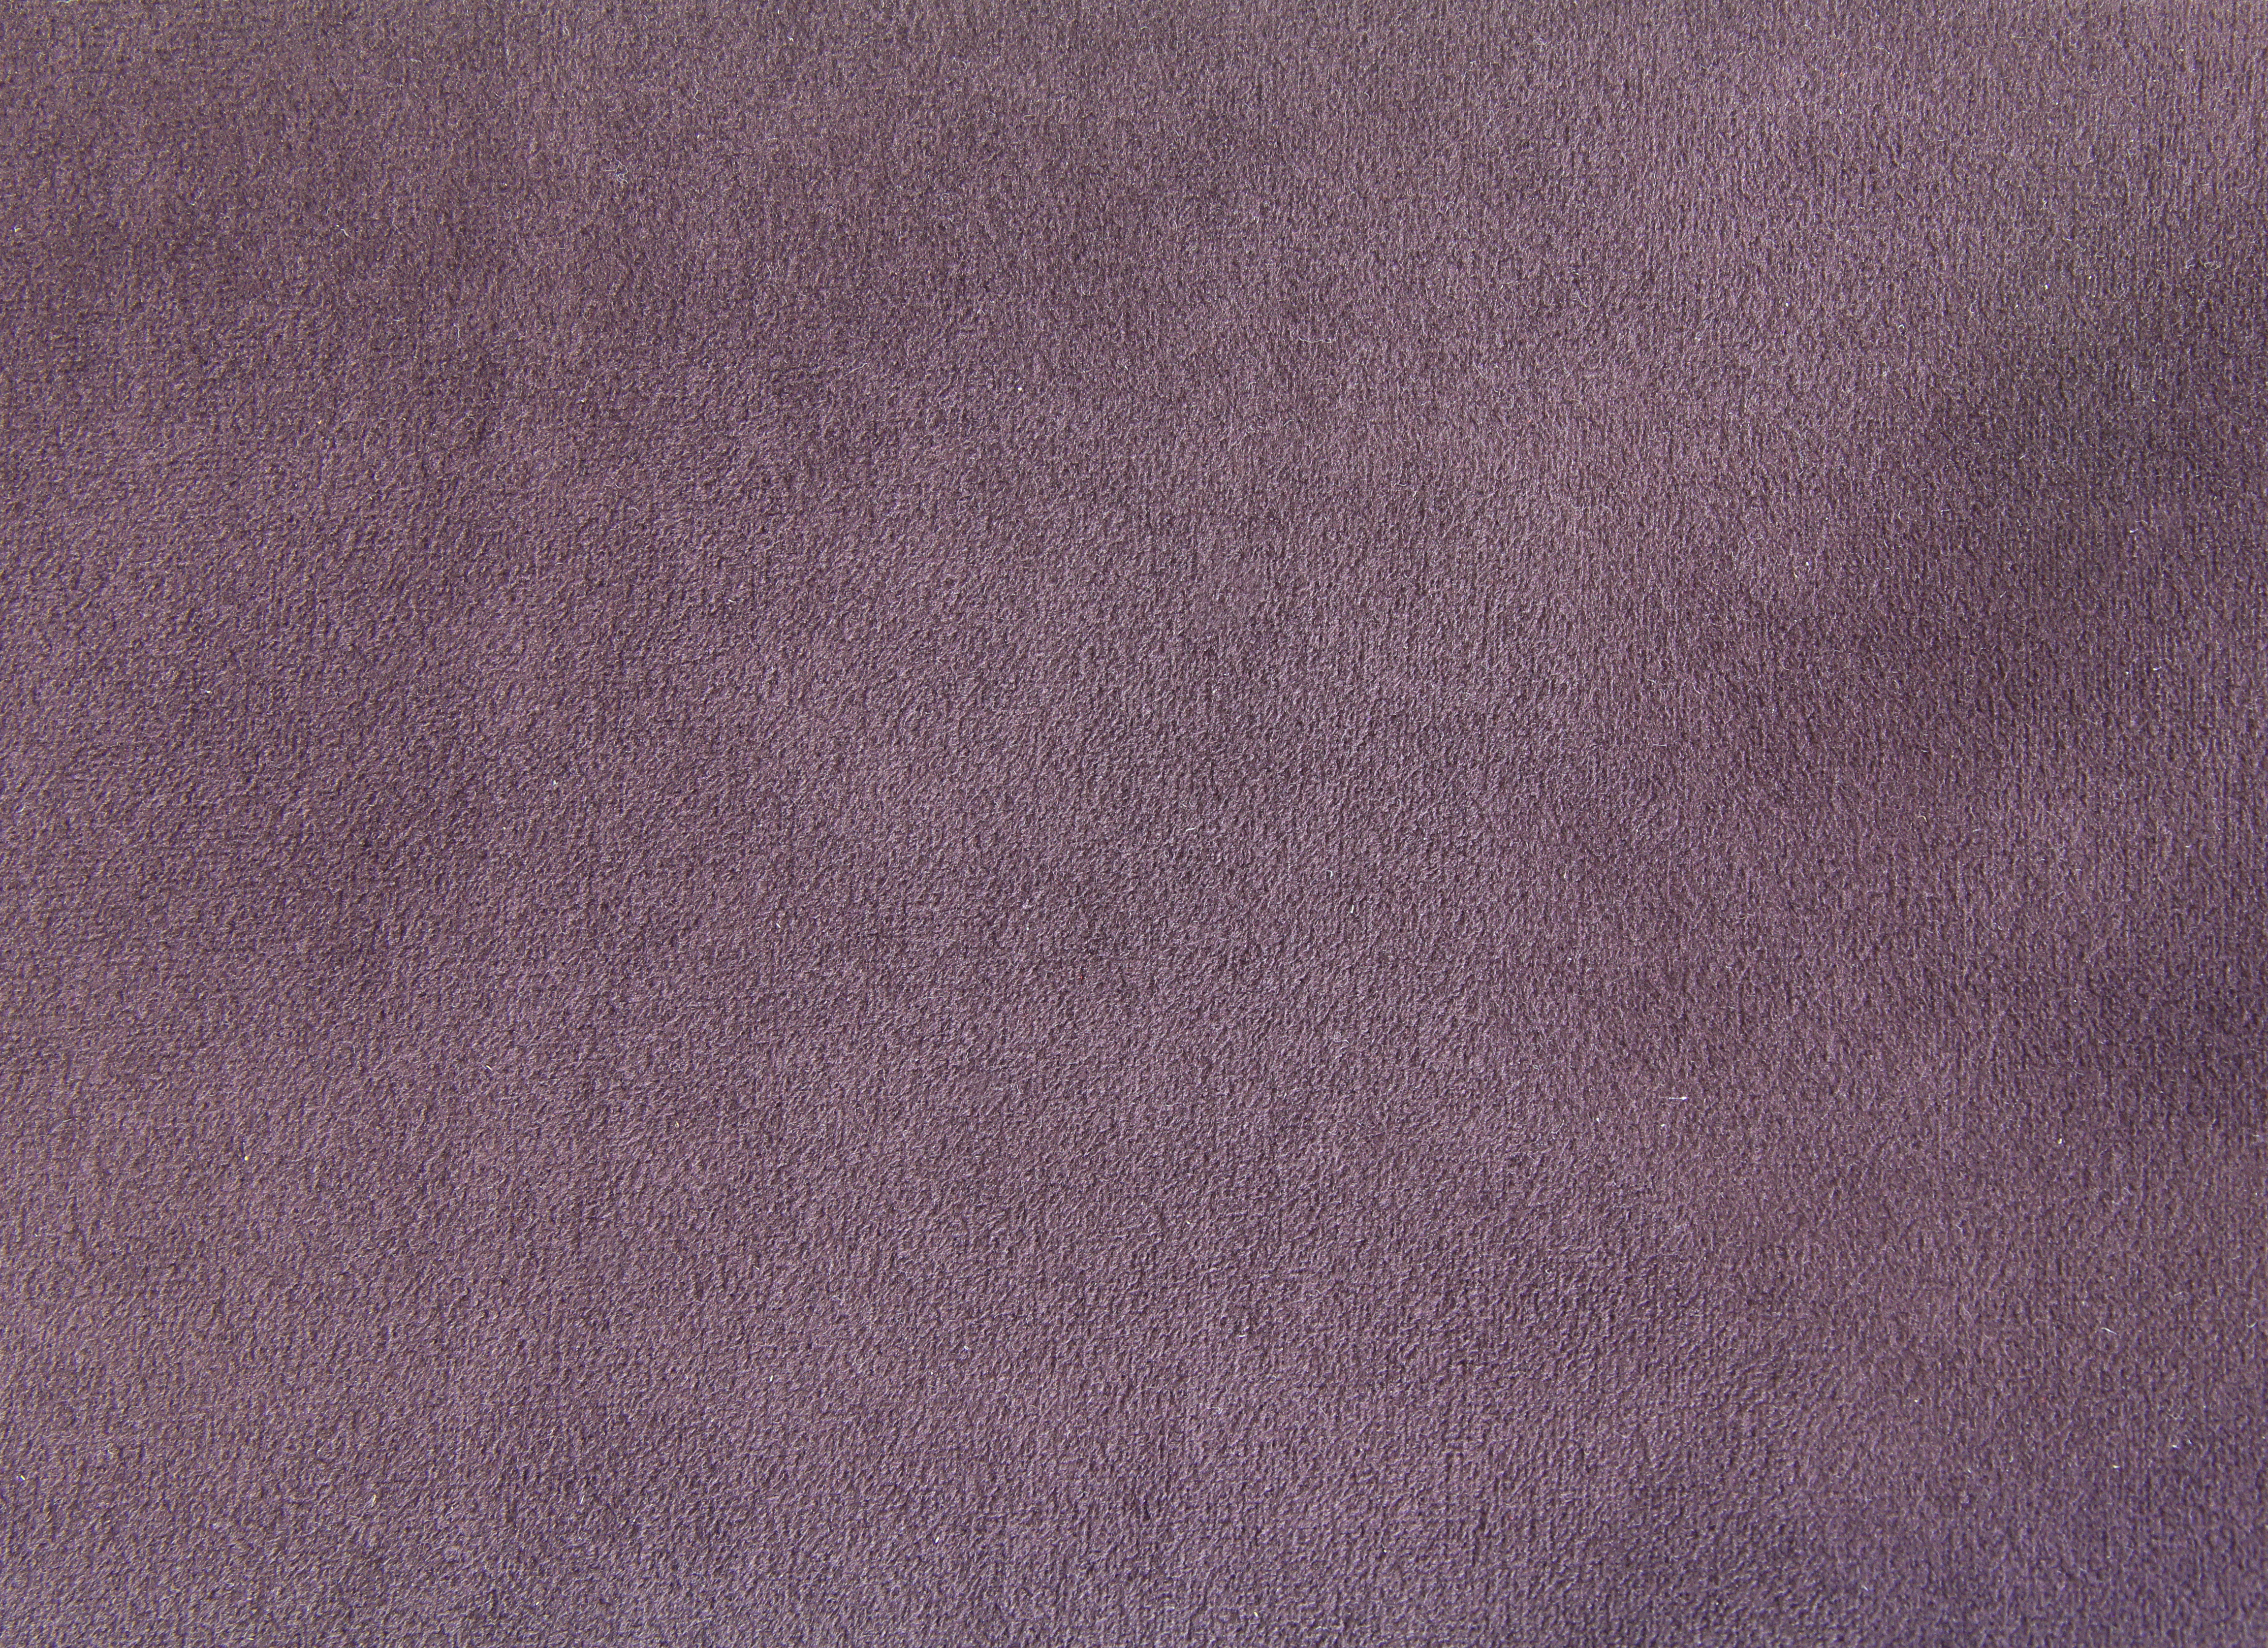 Purple suede texture fabric couch fuzzy cloth photo for Suede fabric